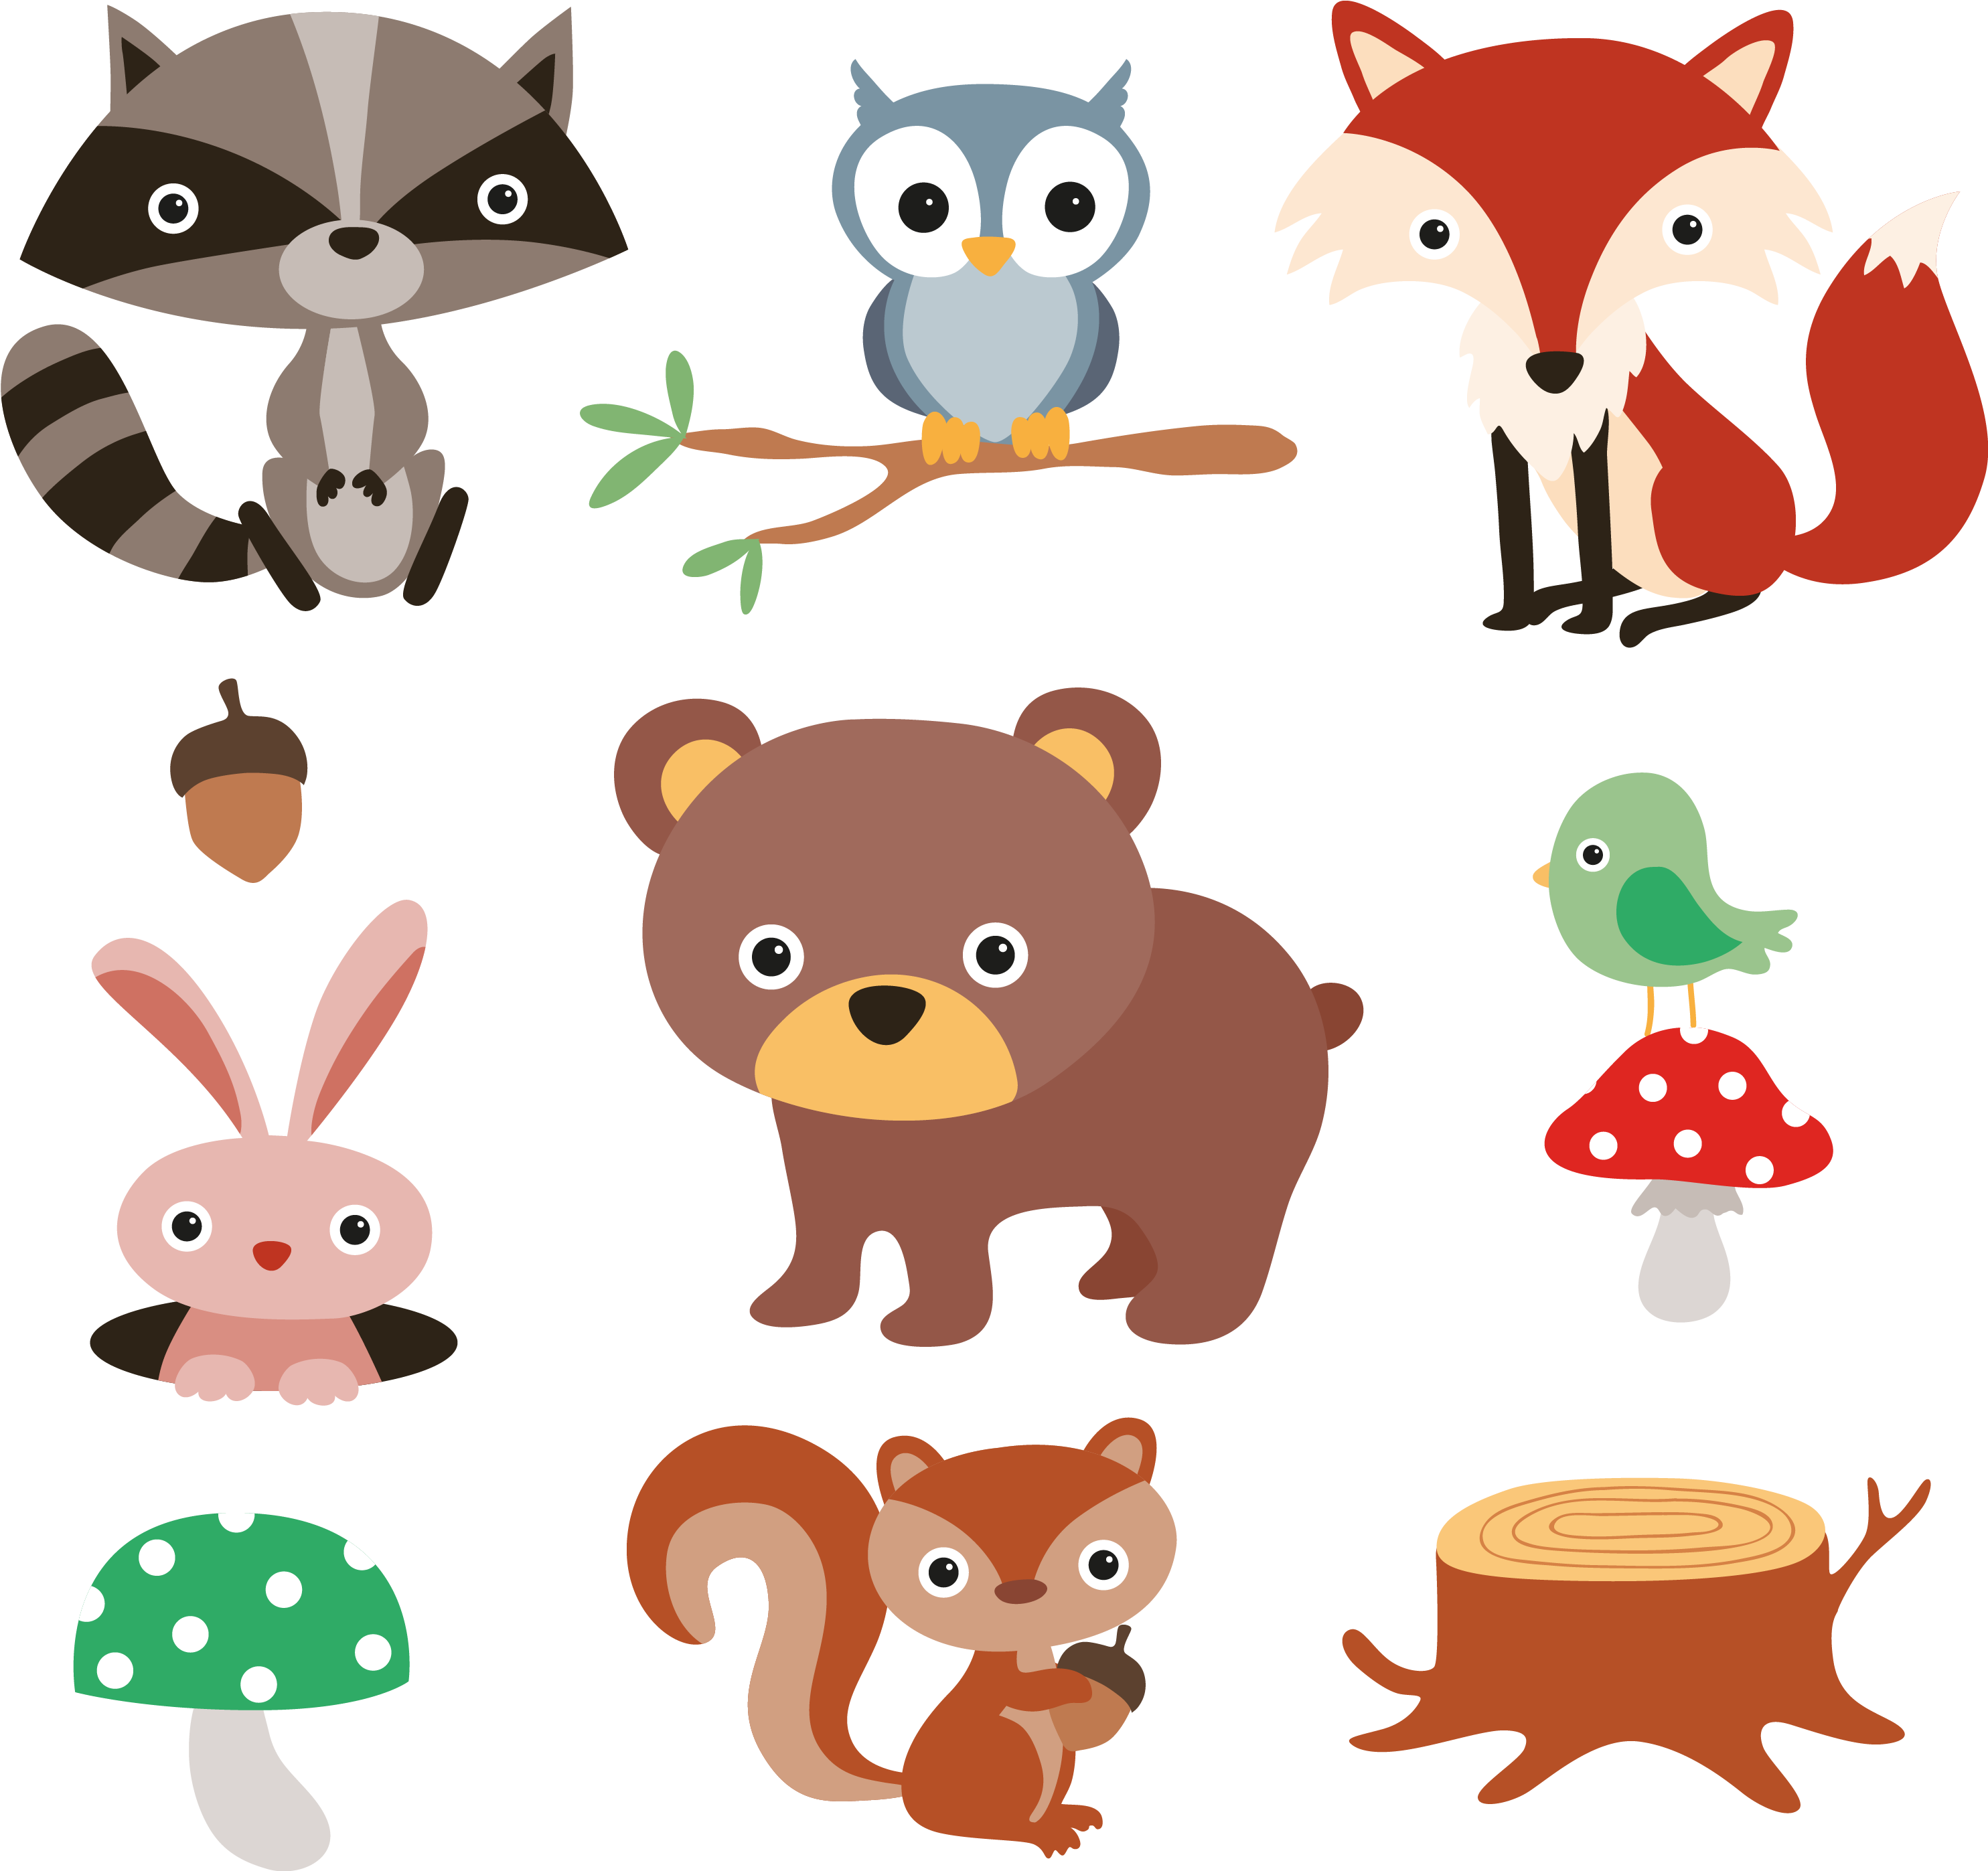 Pin by L T on Animals | Animal clipart, Forest animals, Animal categories